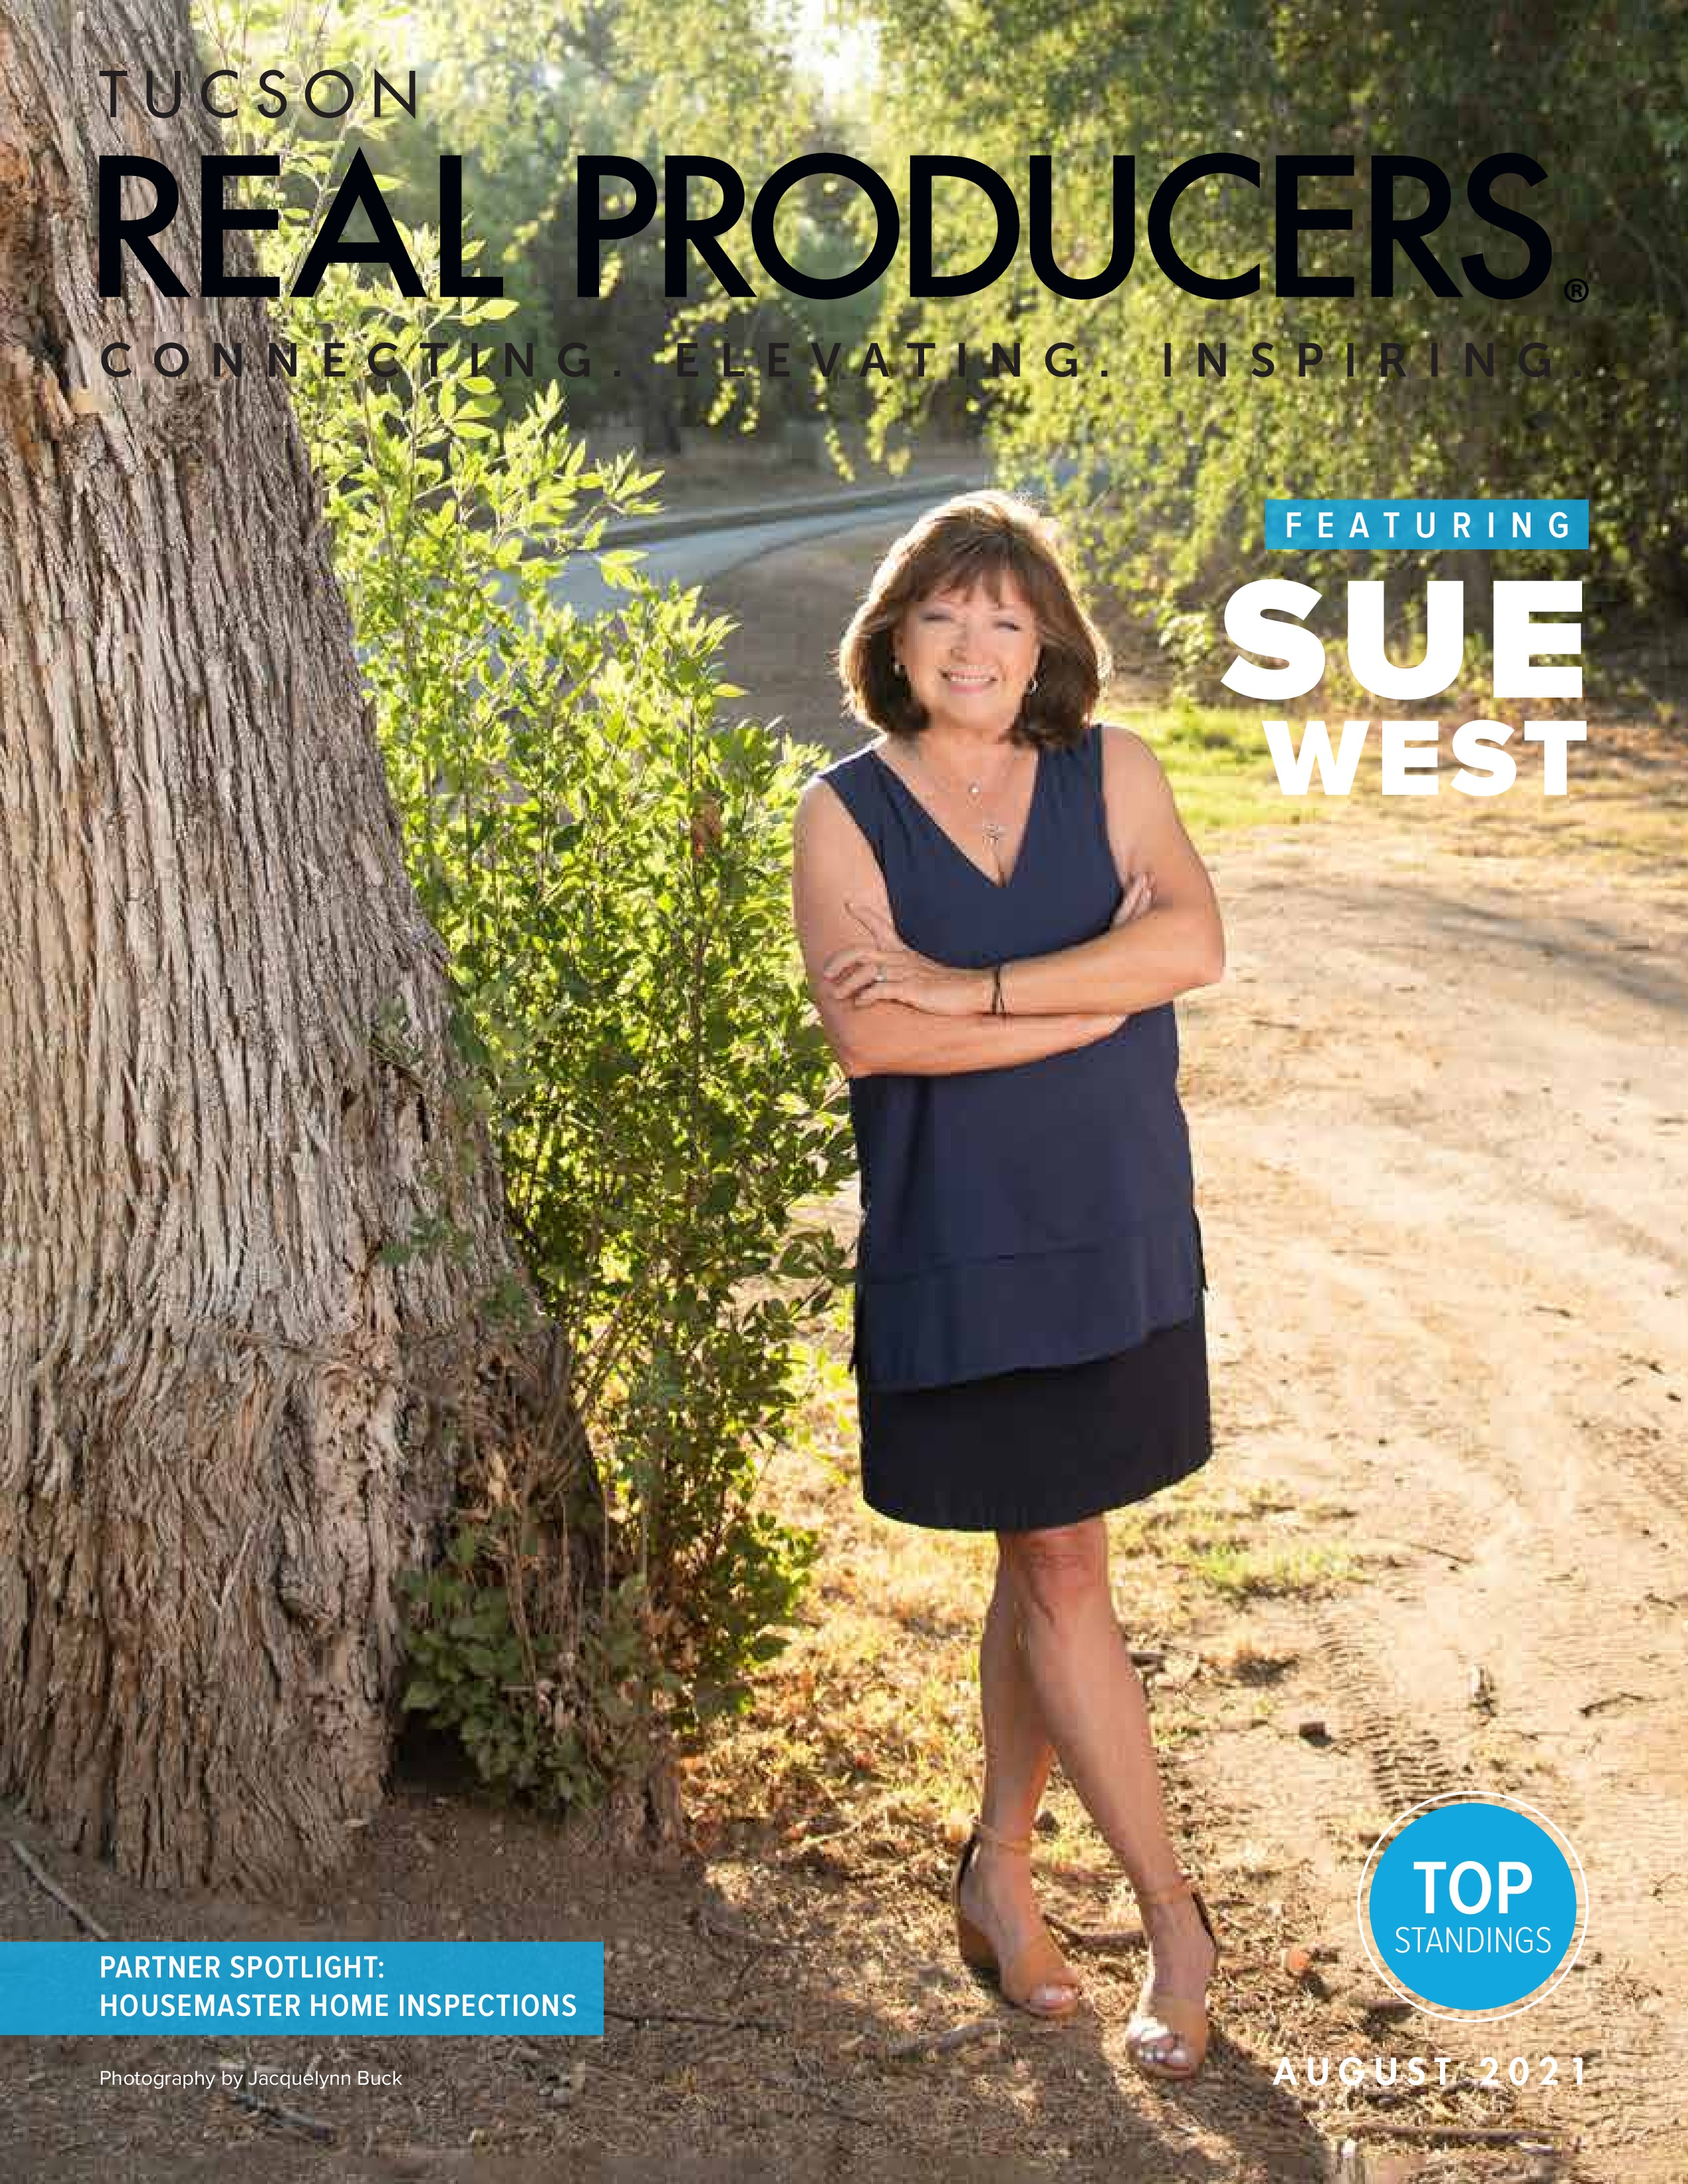 Tucson Real Producers 2021-08-01